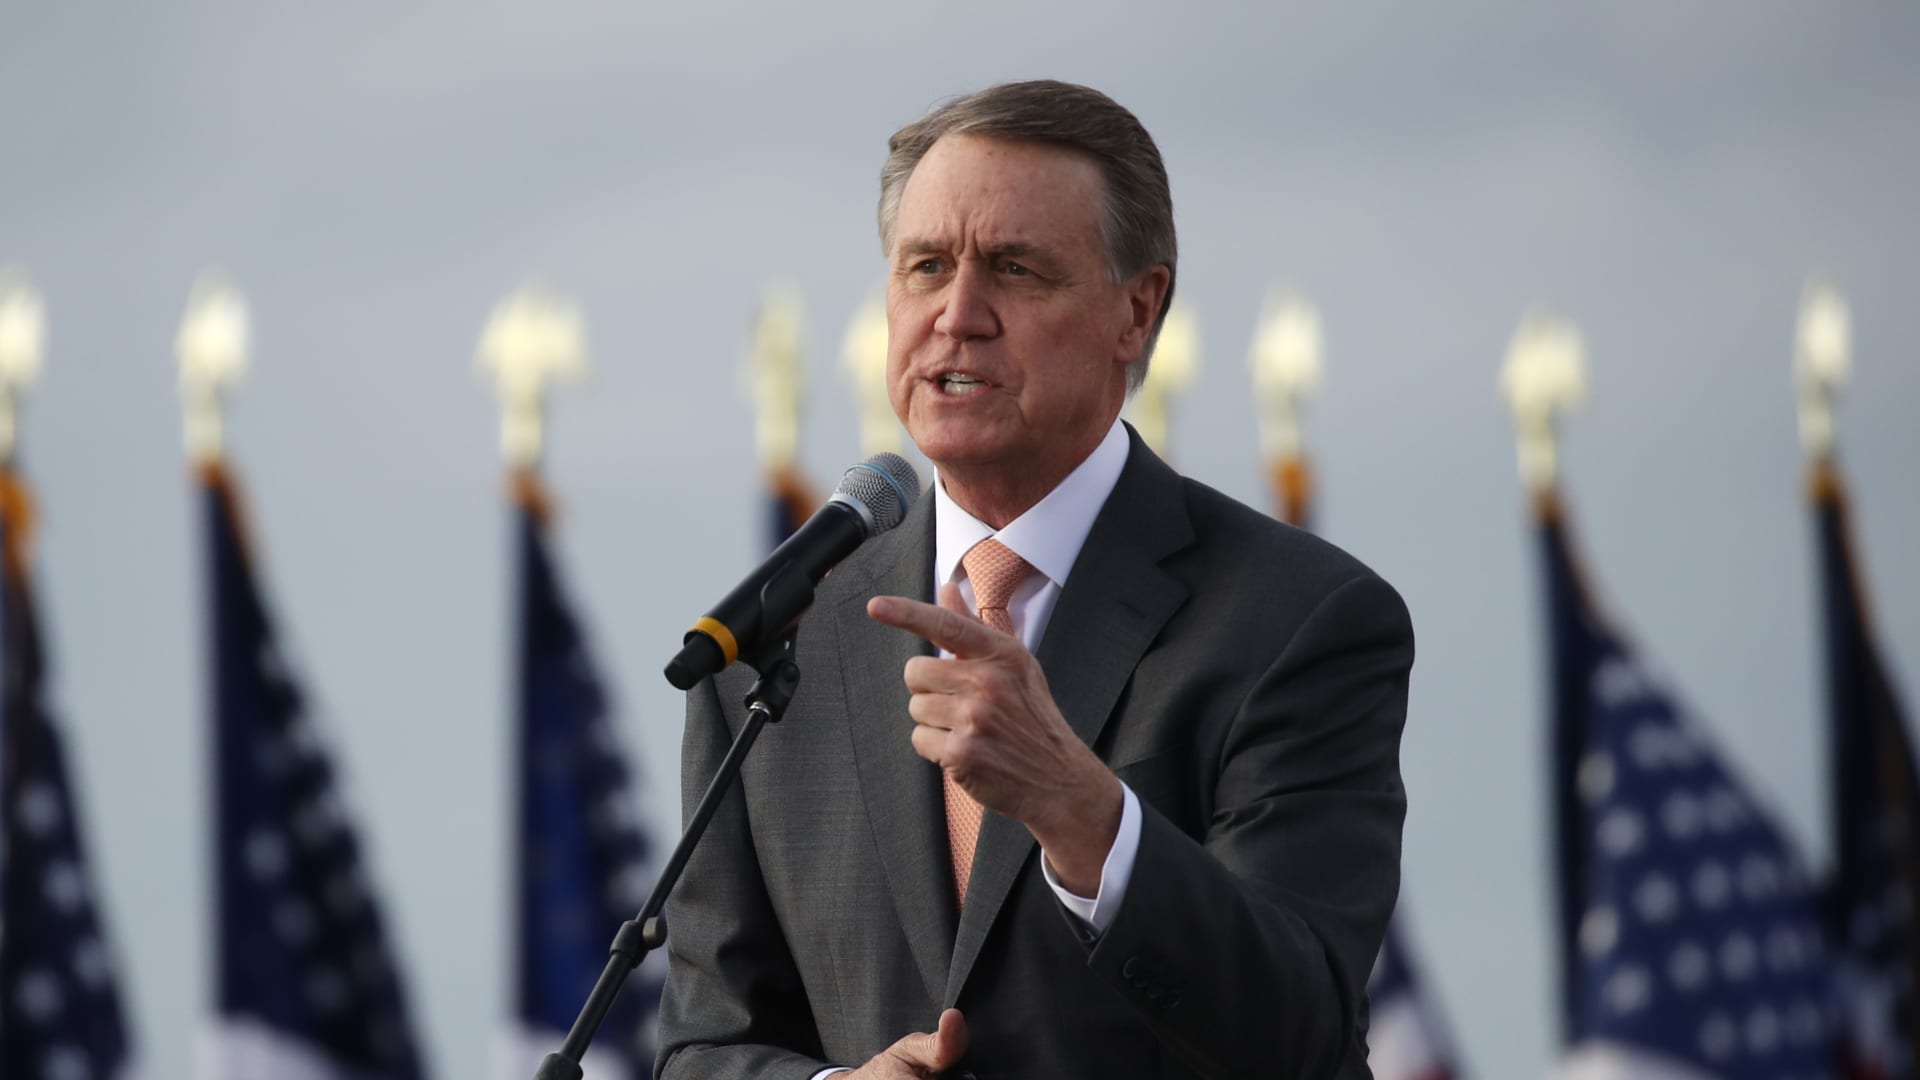 Sen. David Perdue (R-GA) attends a rally with Vice President Mike Pence in support of both he and Sen. Kelly Loeffler (R-GA) on December 04, 2020 in Savannah, Georgia.